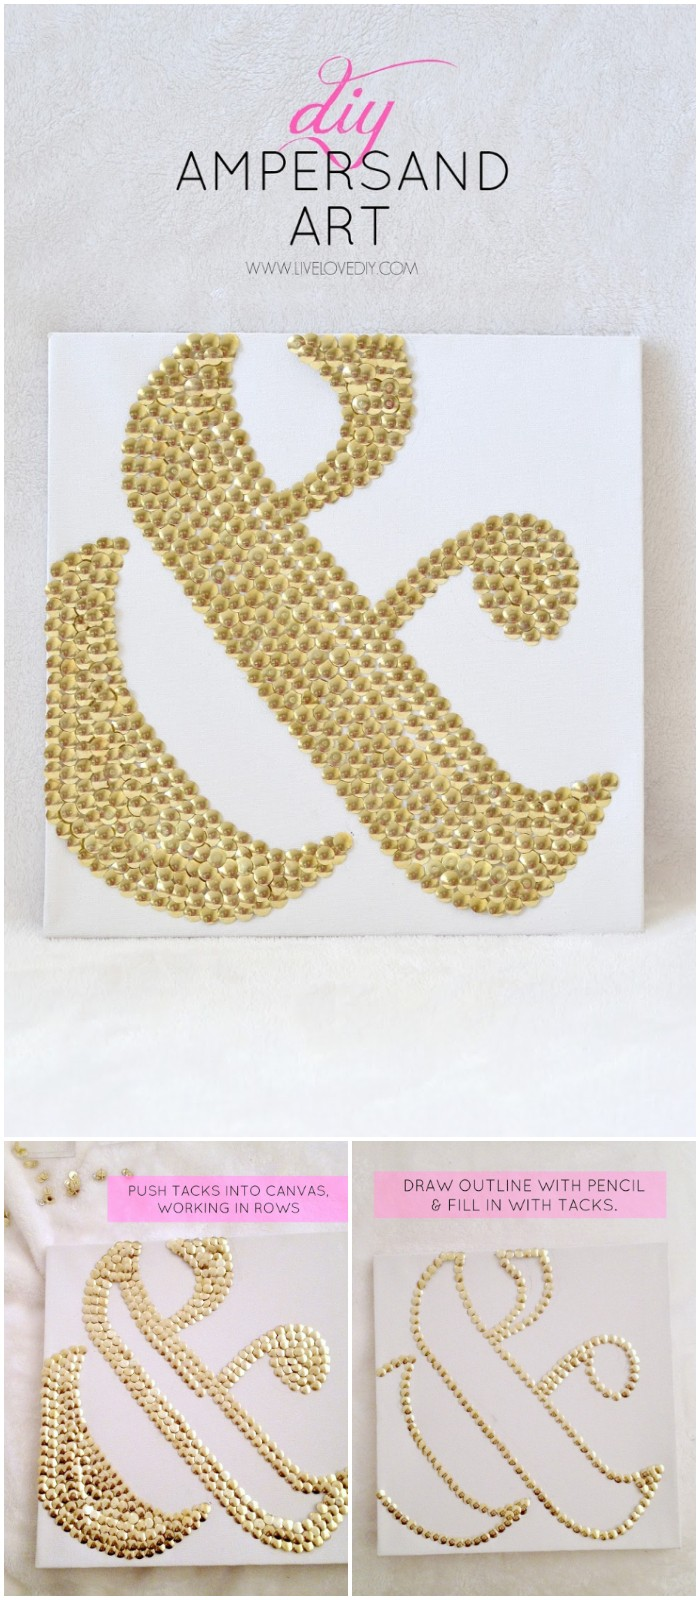 Thumbtacks Ampersand Art